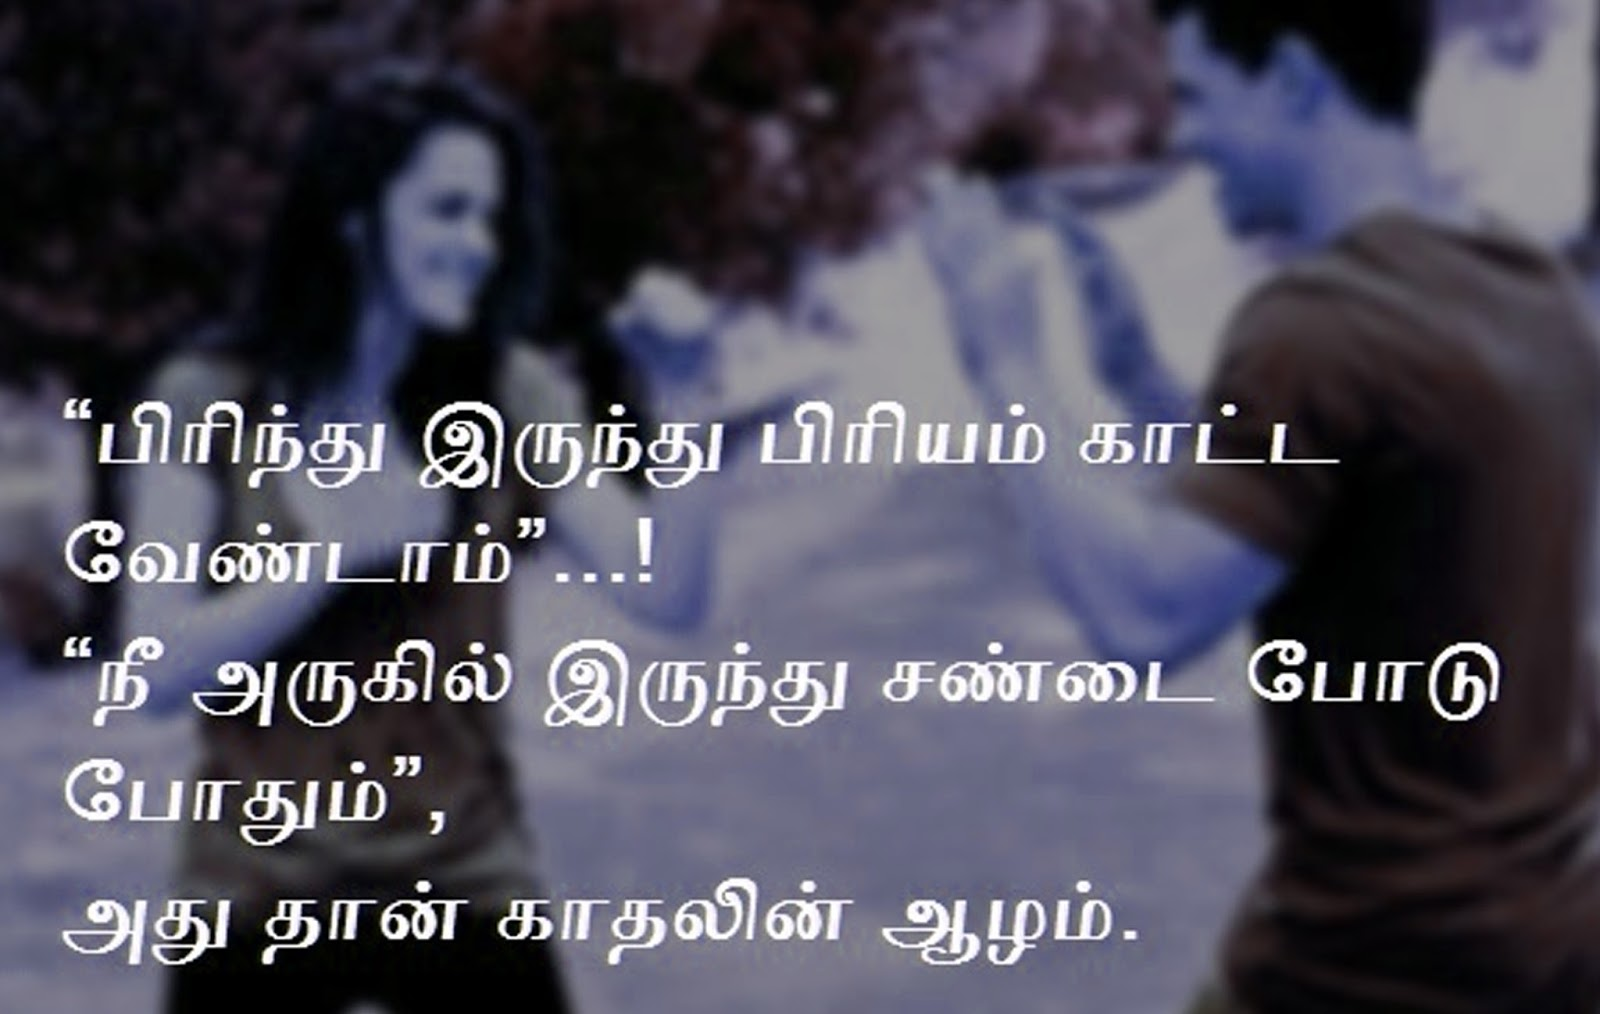 Top Life Quotes And Sayings In Tamil Language Wallpapers Www